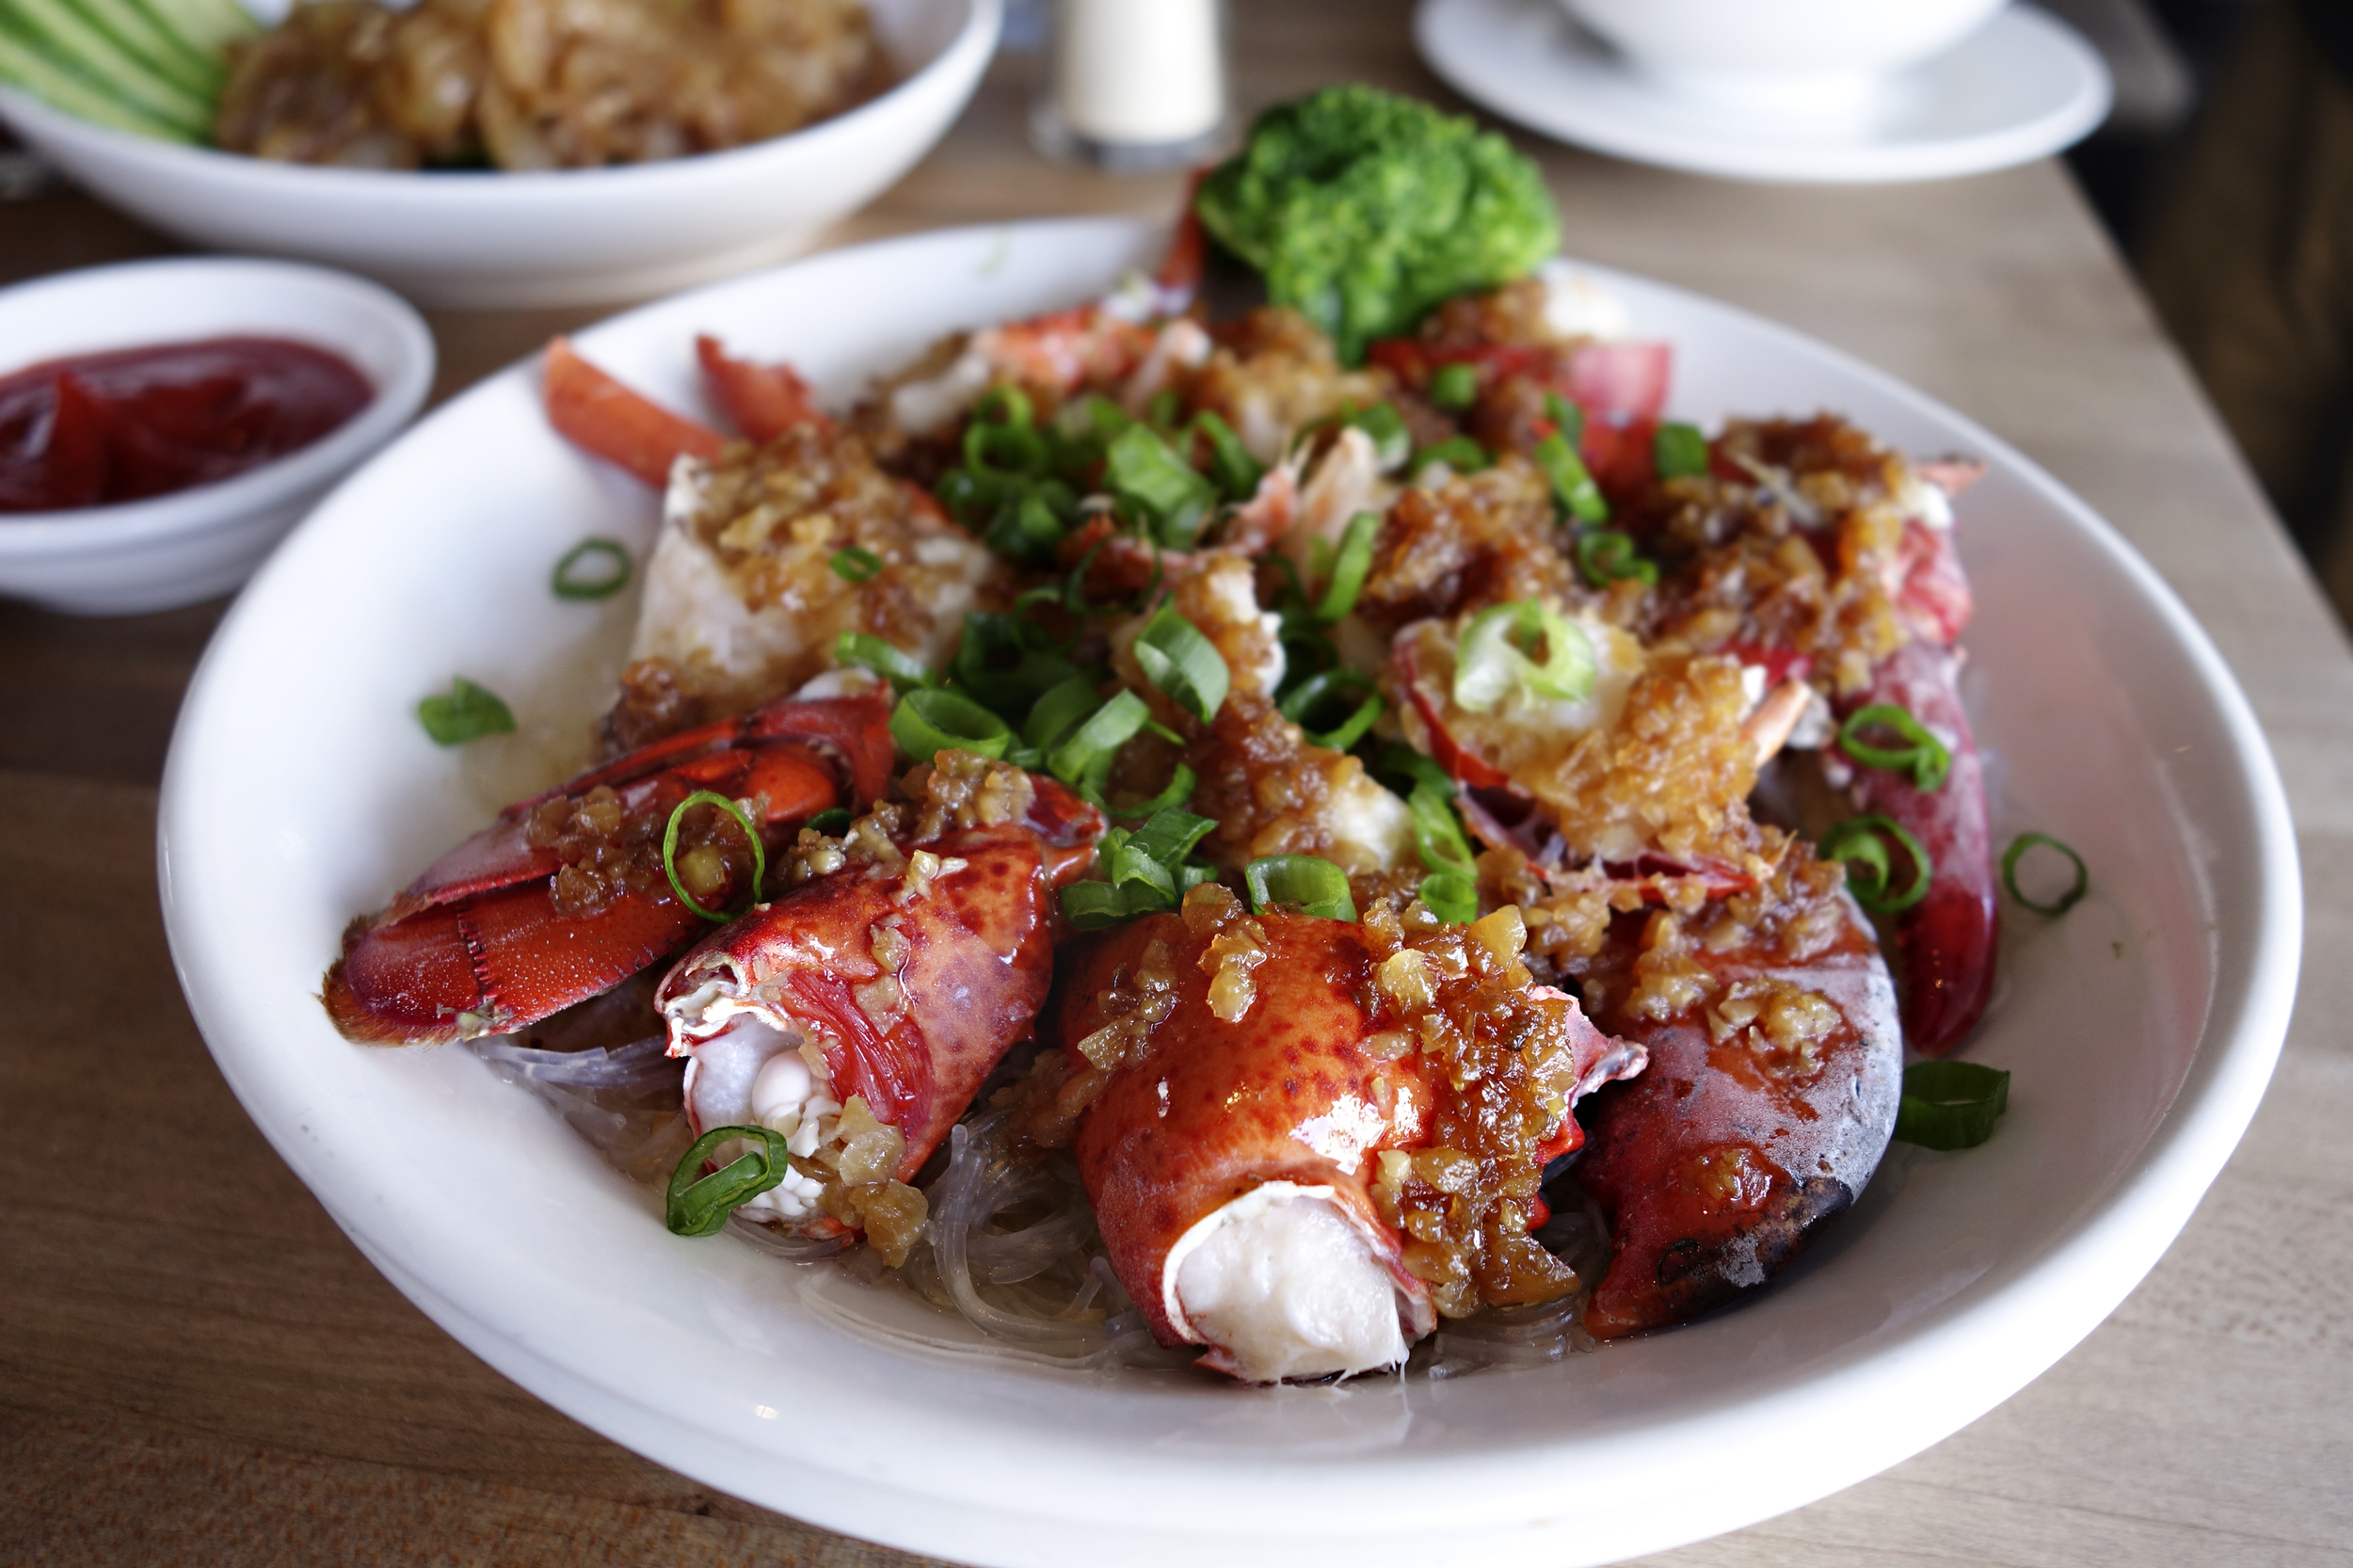 Steamed garlic lobster with rice noodles